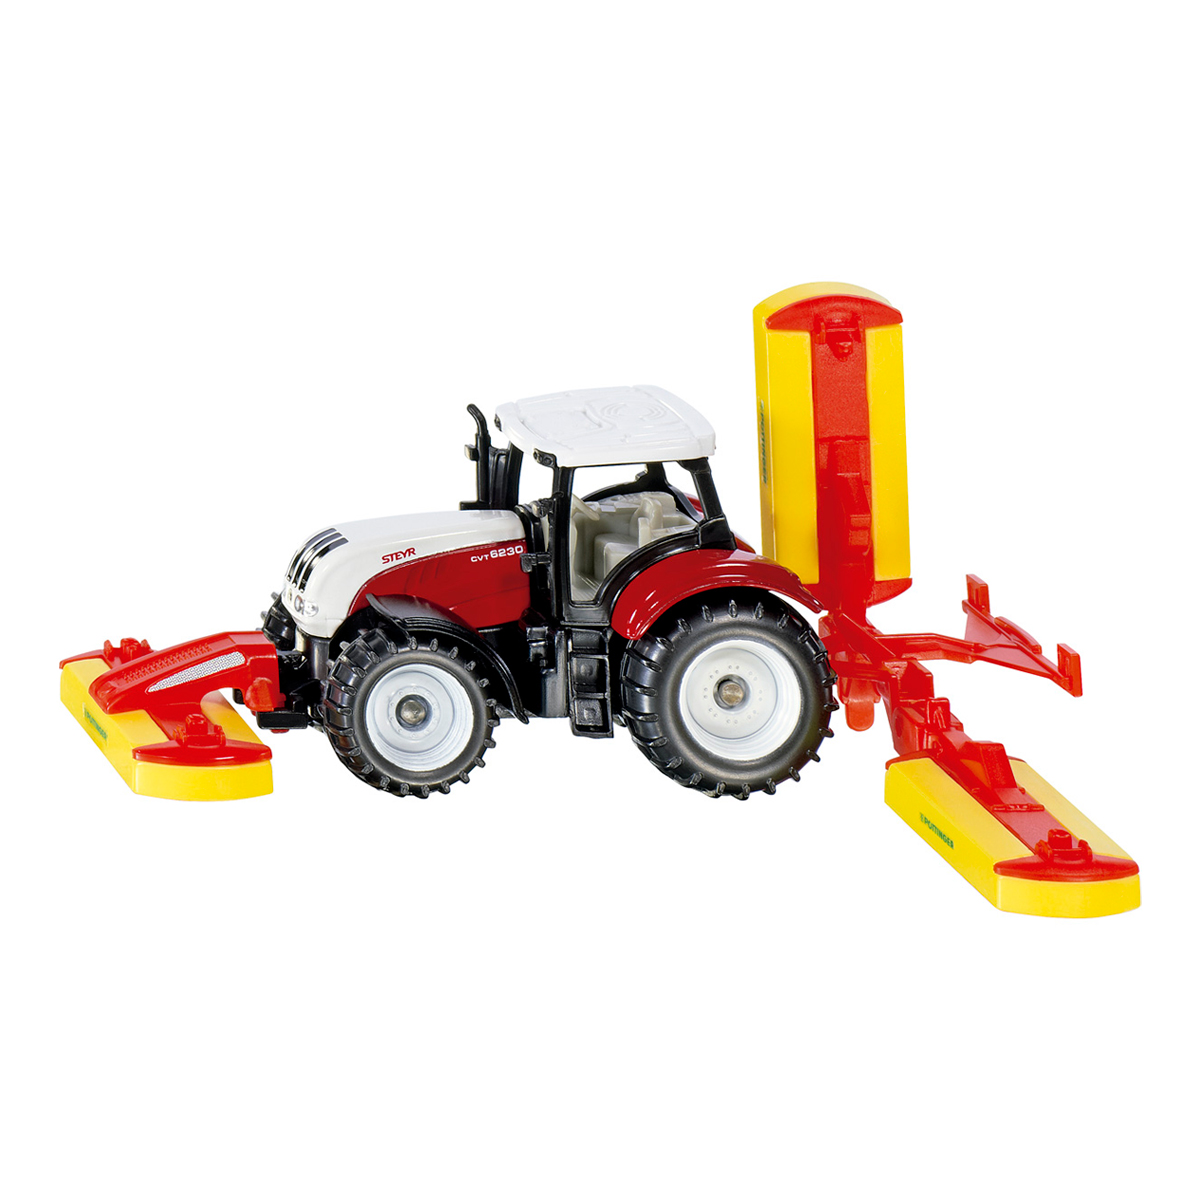 Steyr with Pottinger mower combination(ジク・SIKU)